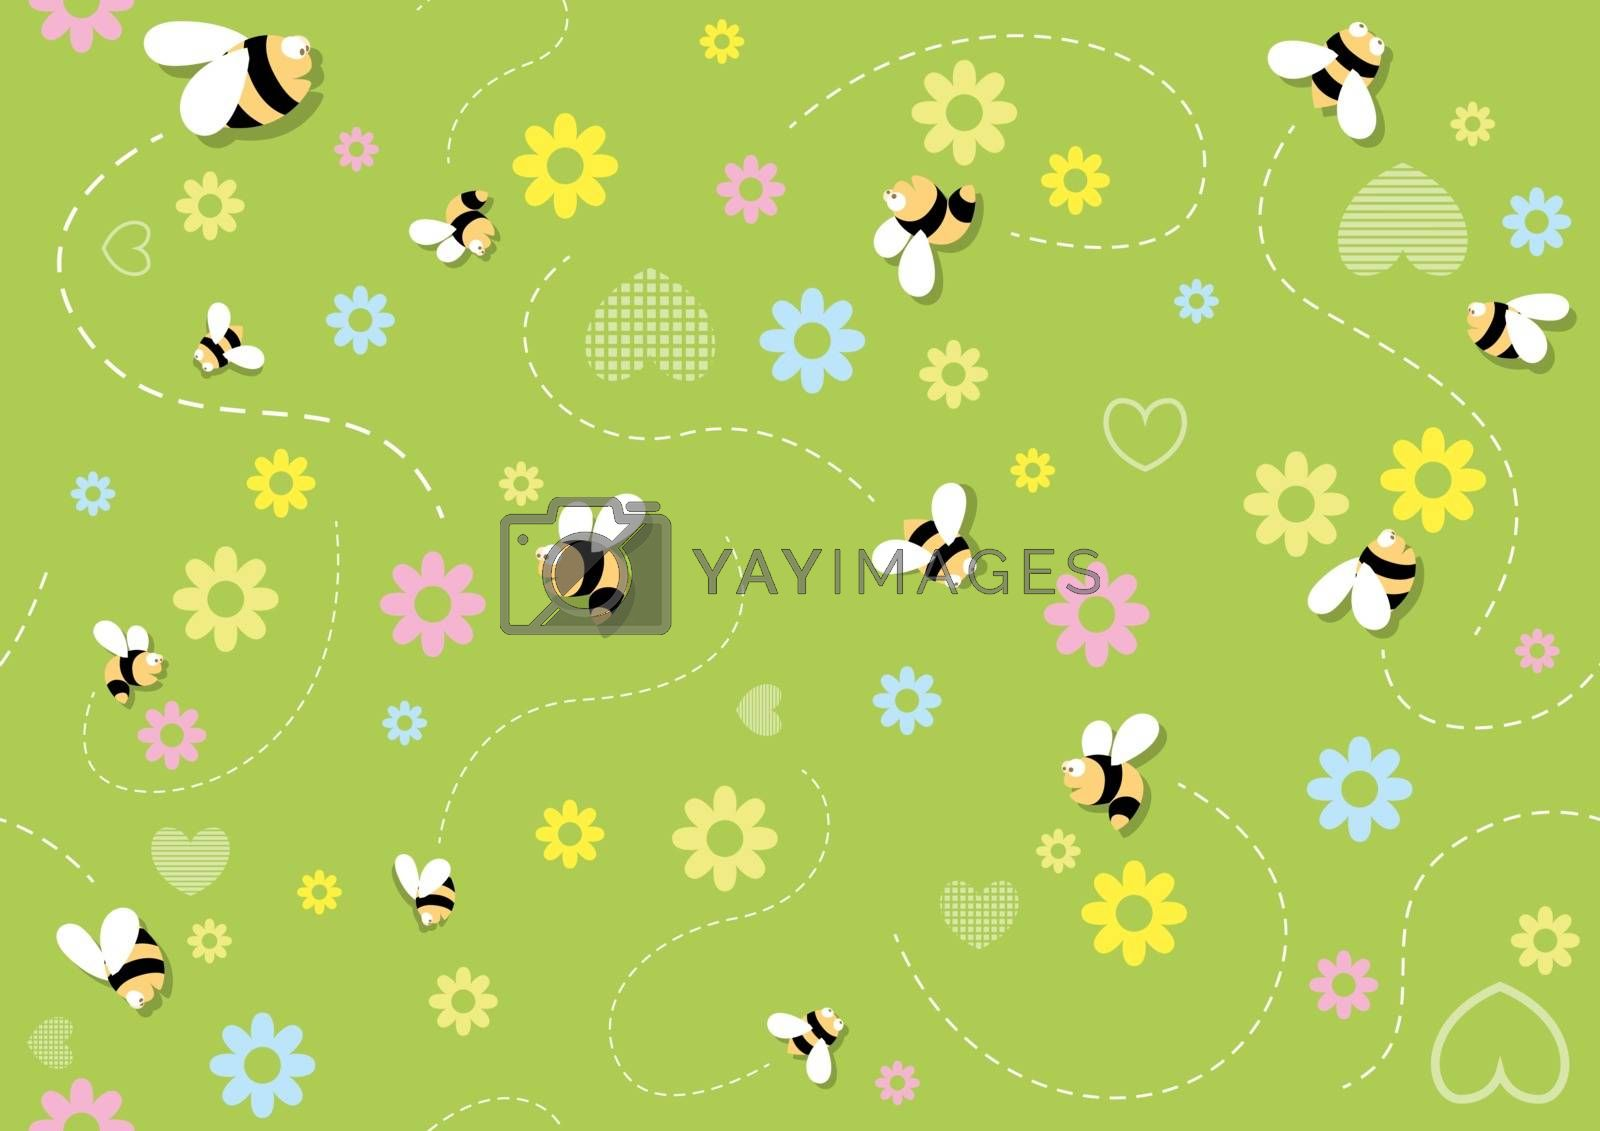 Seamless Baby Pattern with Bees on Green Flowering Background - Repetitive Print Texture, Vector Illustration